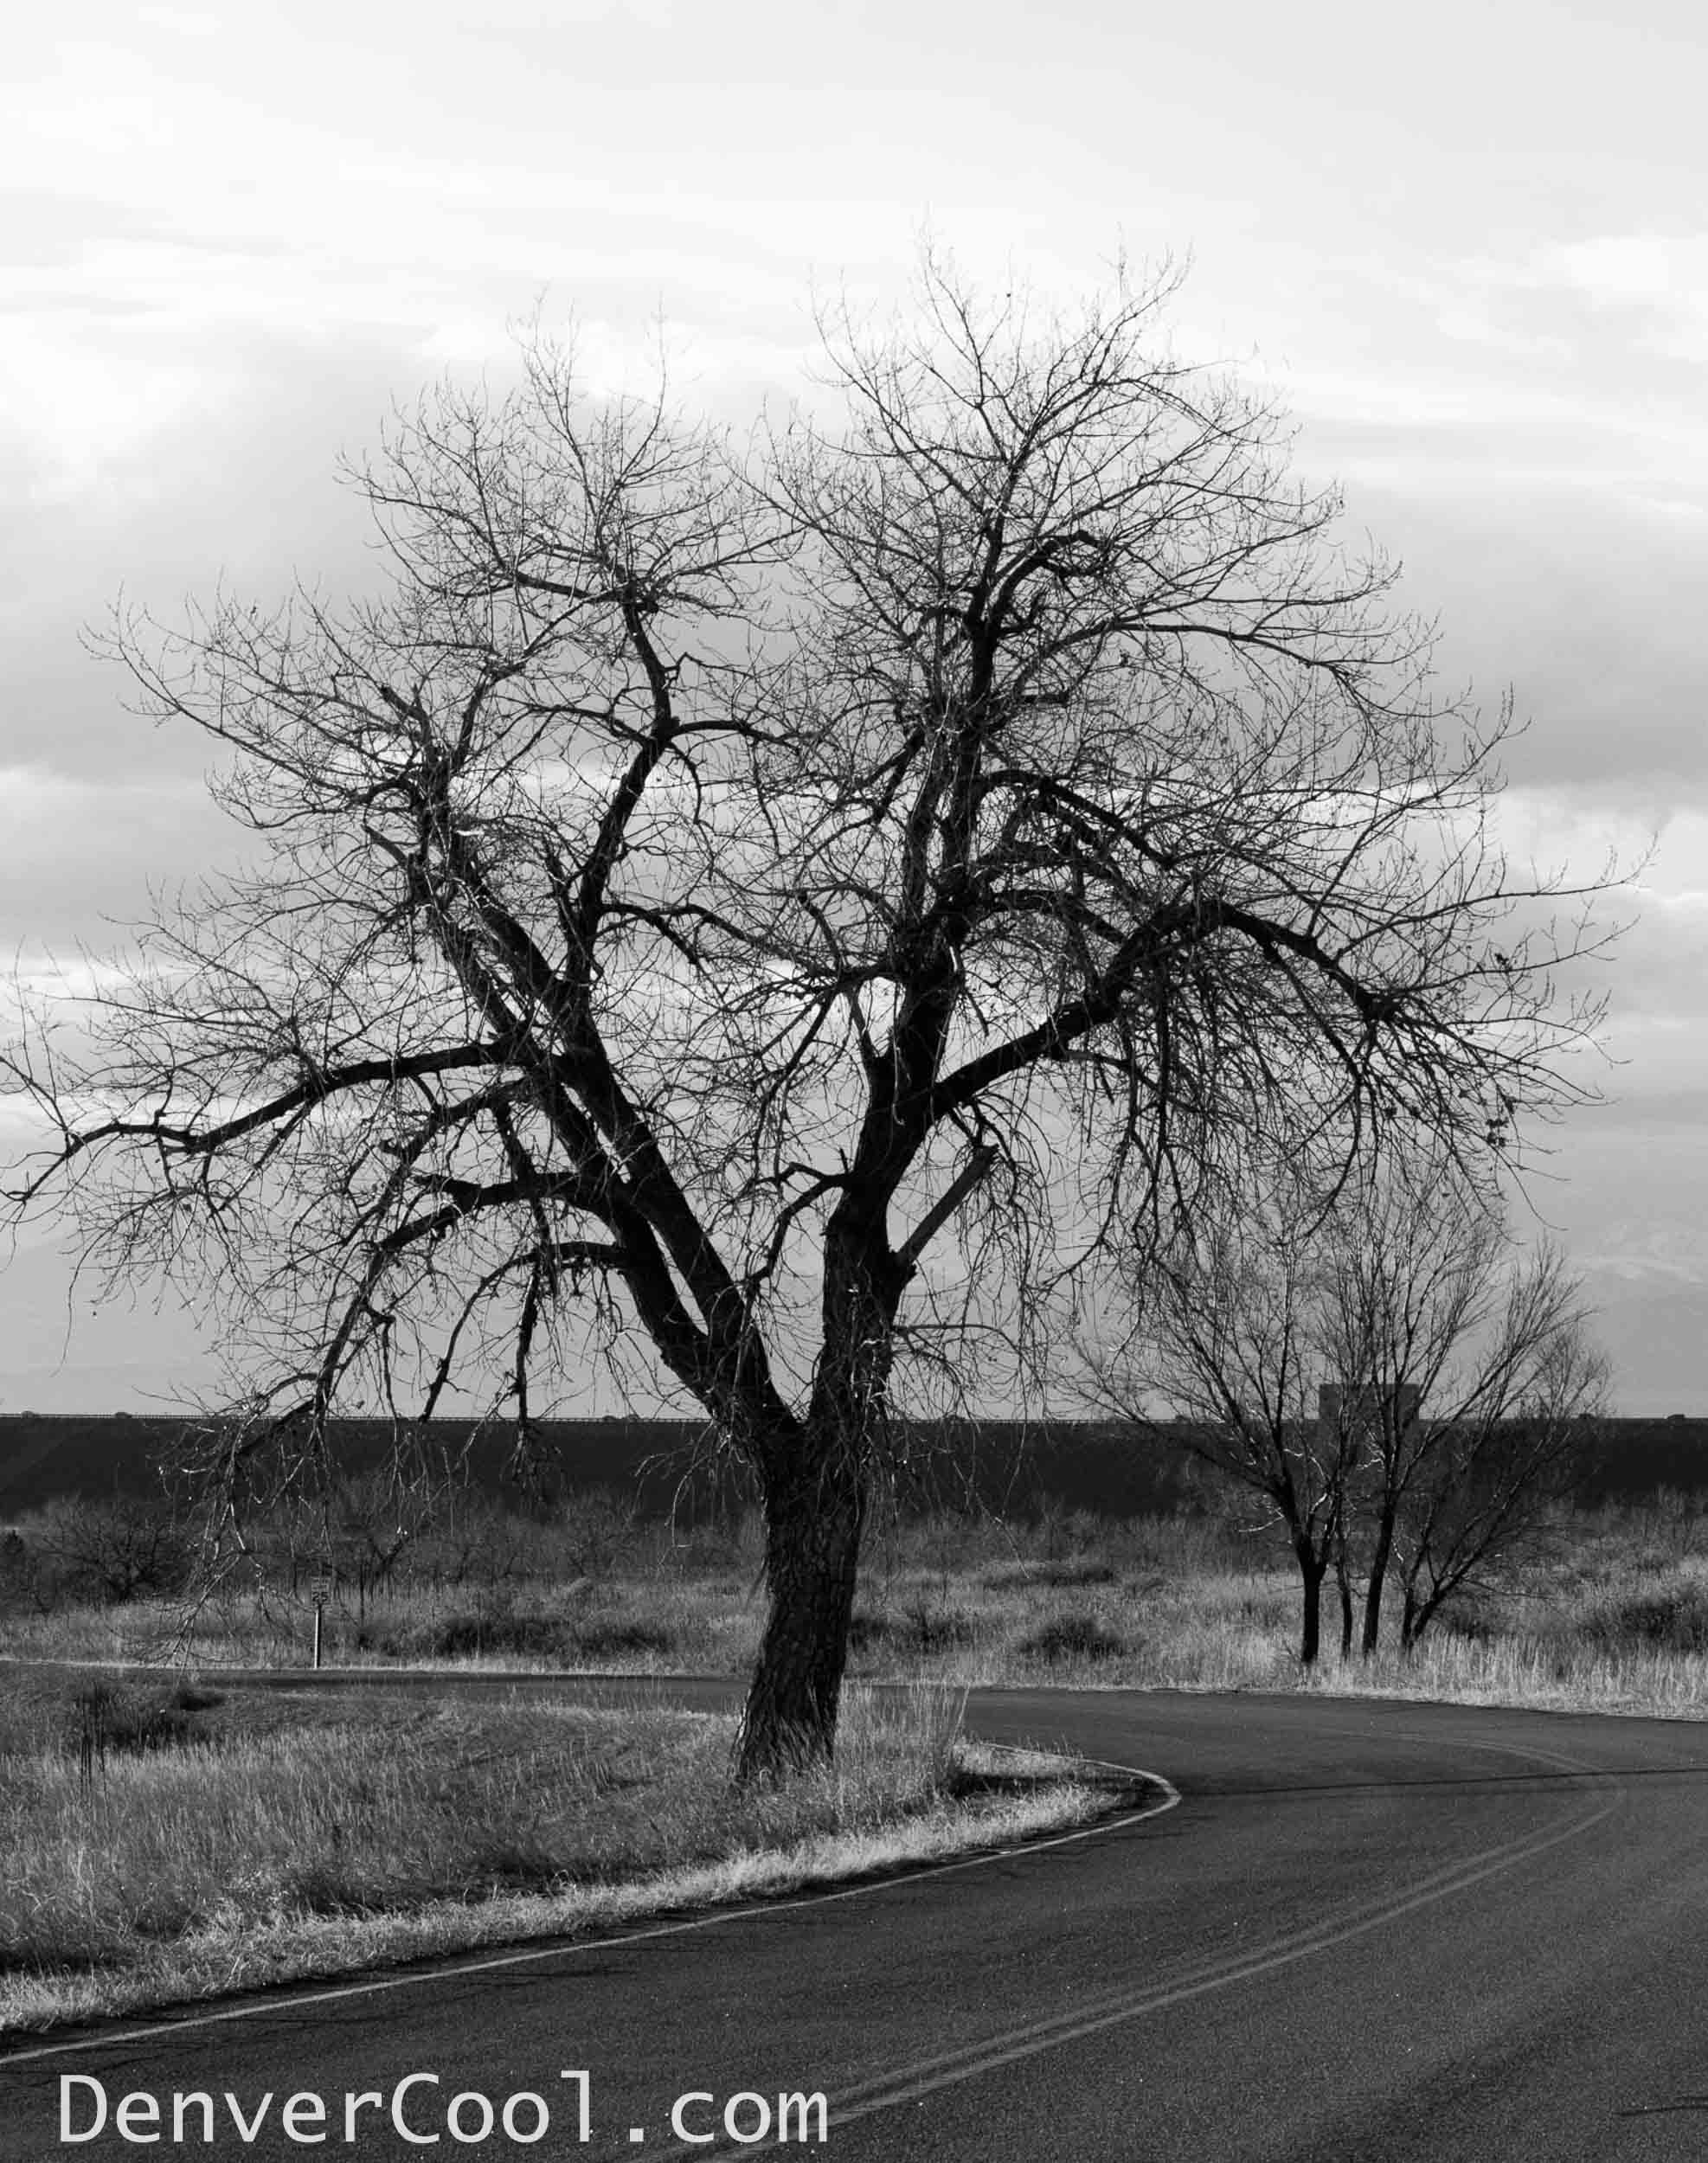 Dead Tree by the Side of the Road